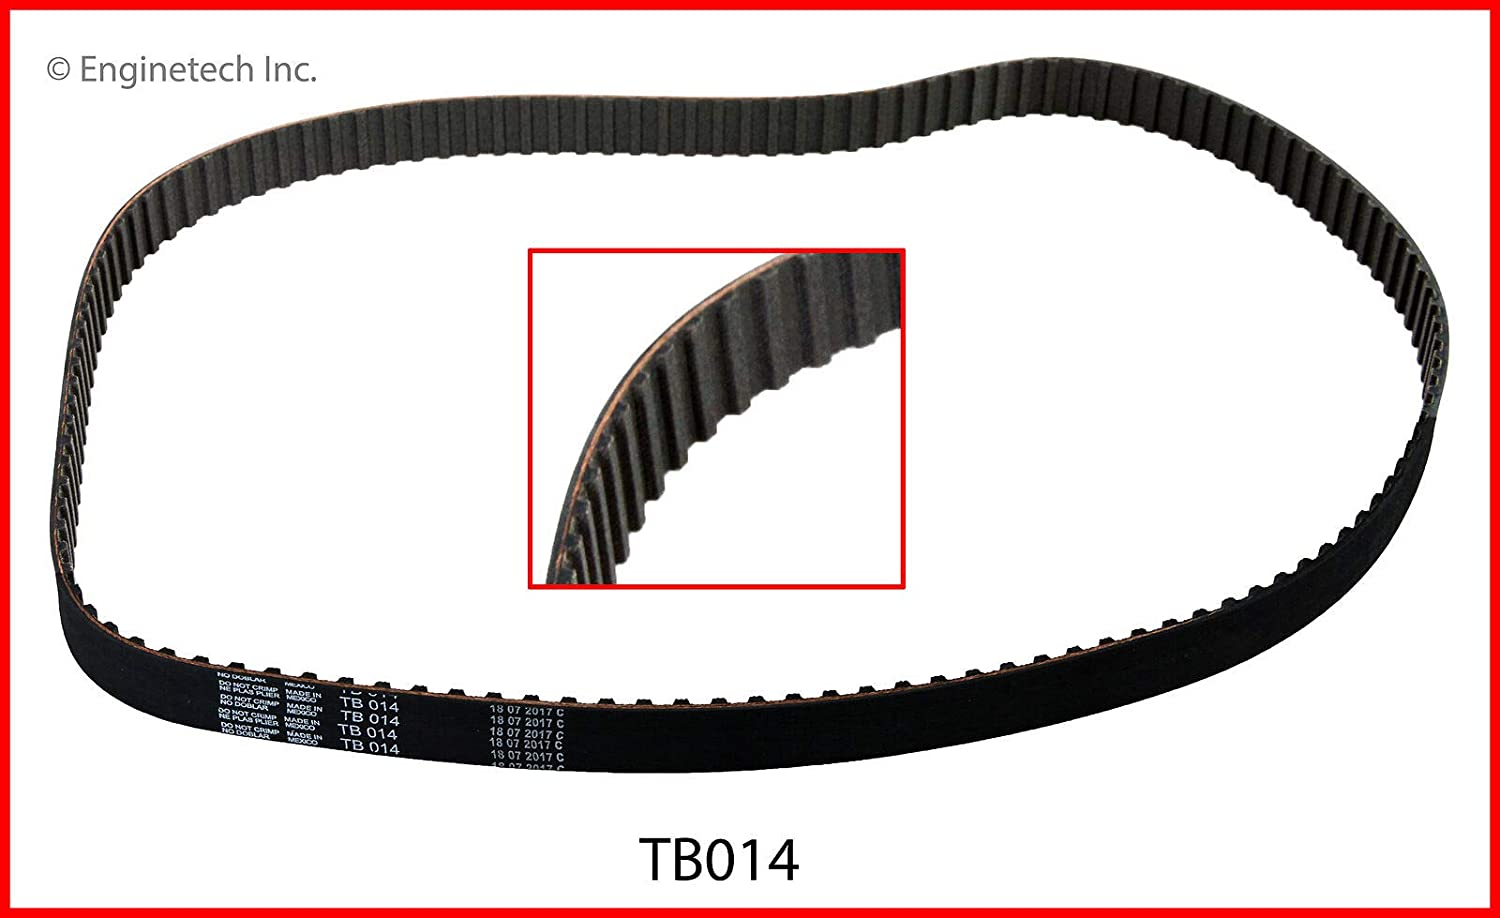 ENGINETECH TB014 TIMING BELT INCLUDES TURBO//CAR /& TRUCK ENGINES SQUARE TOOTH compatible with 1974-1992 FORD MERCURY 140 2.3L 121 2.0L L4